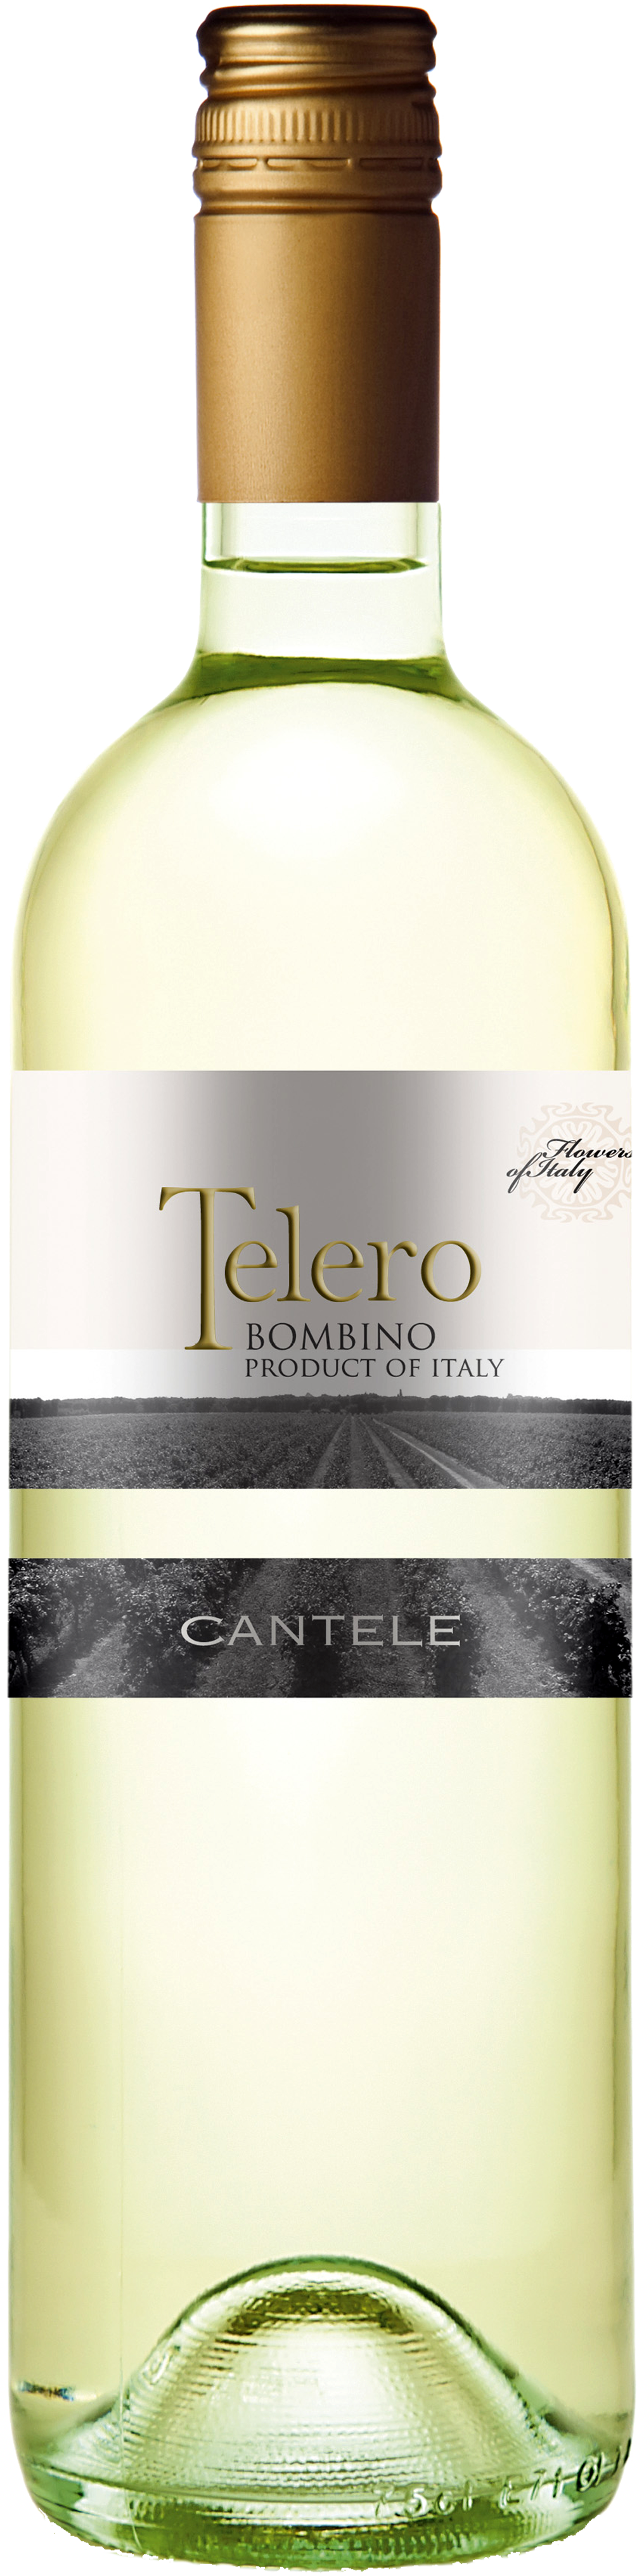 Image of product Telero Bianco (Bombino)